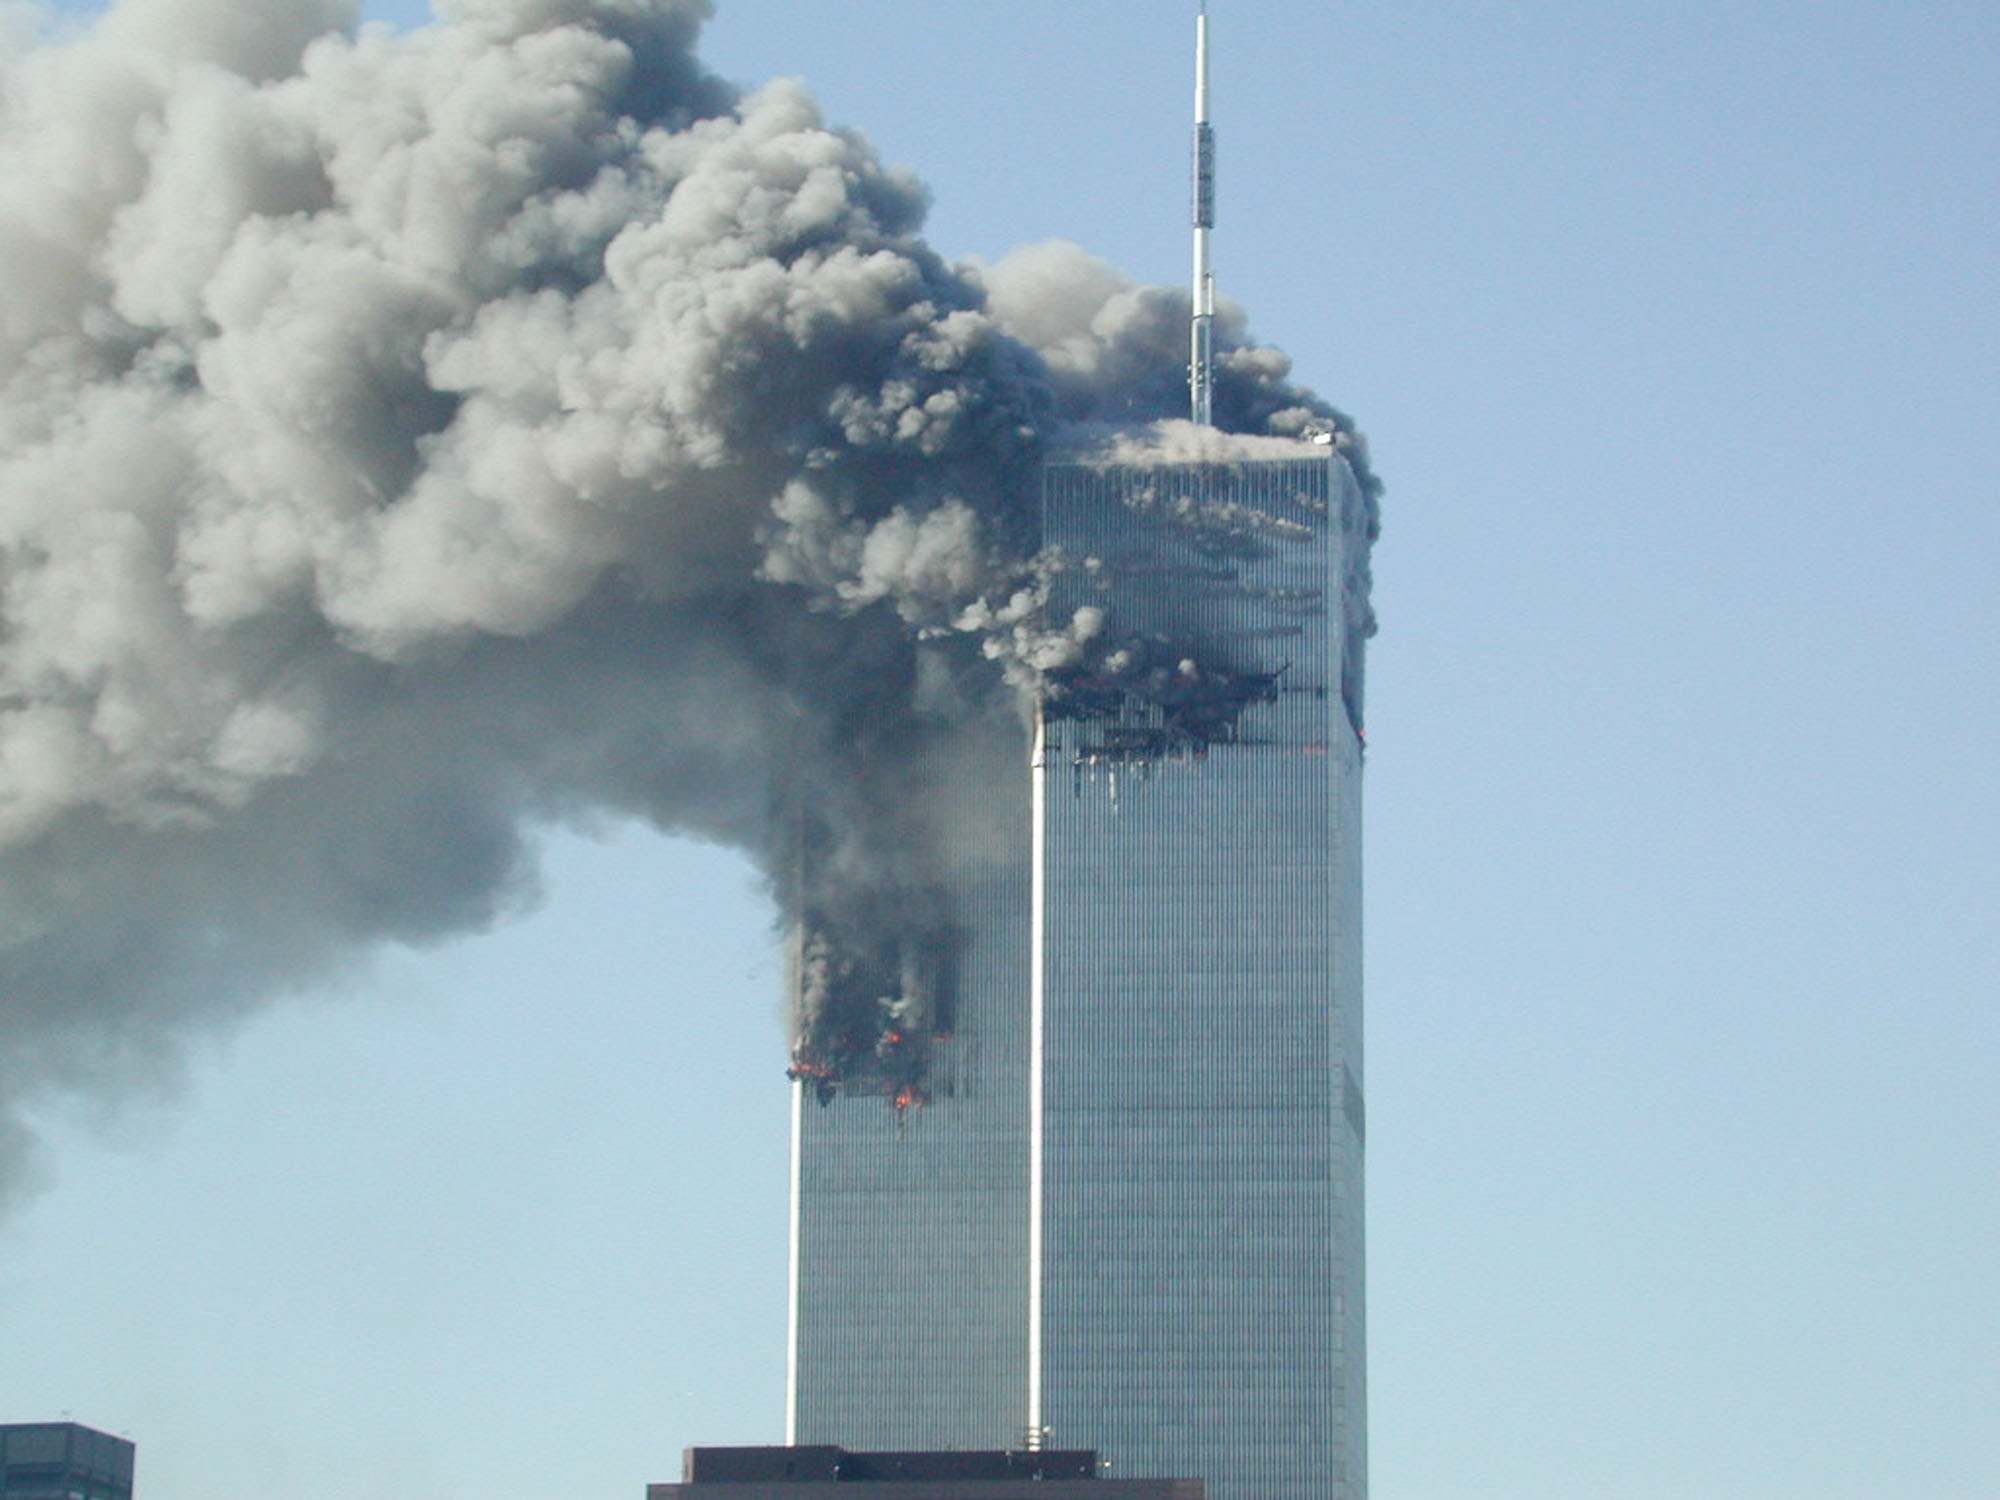 9/11 Quotes & Sayings: Remembering September 11th Attacks | Heavy.com